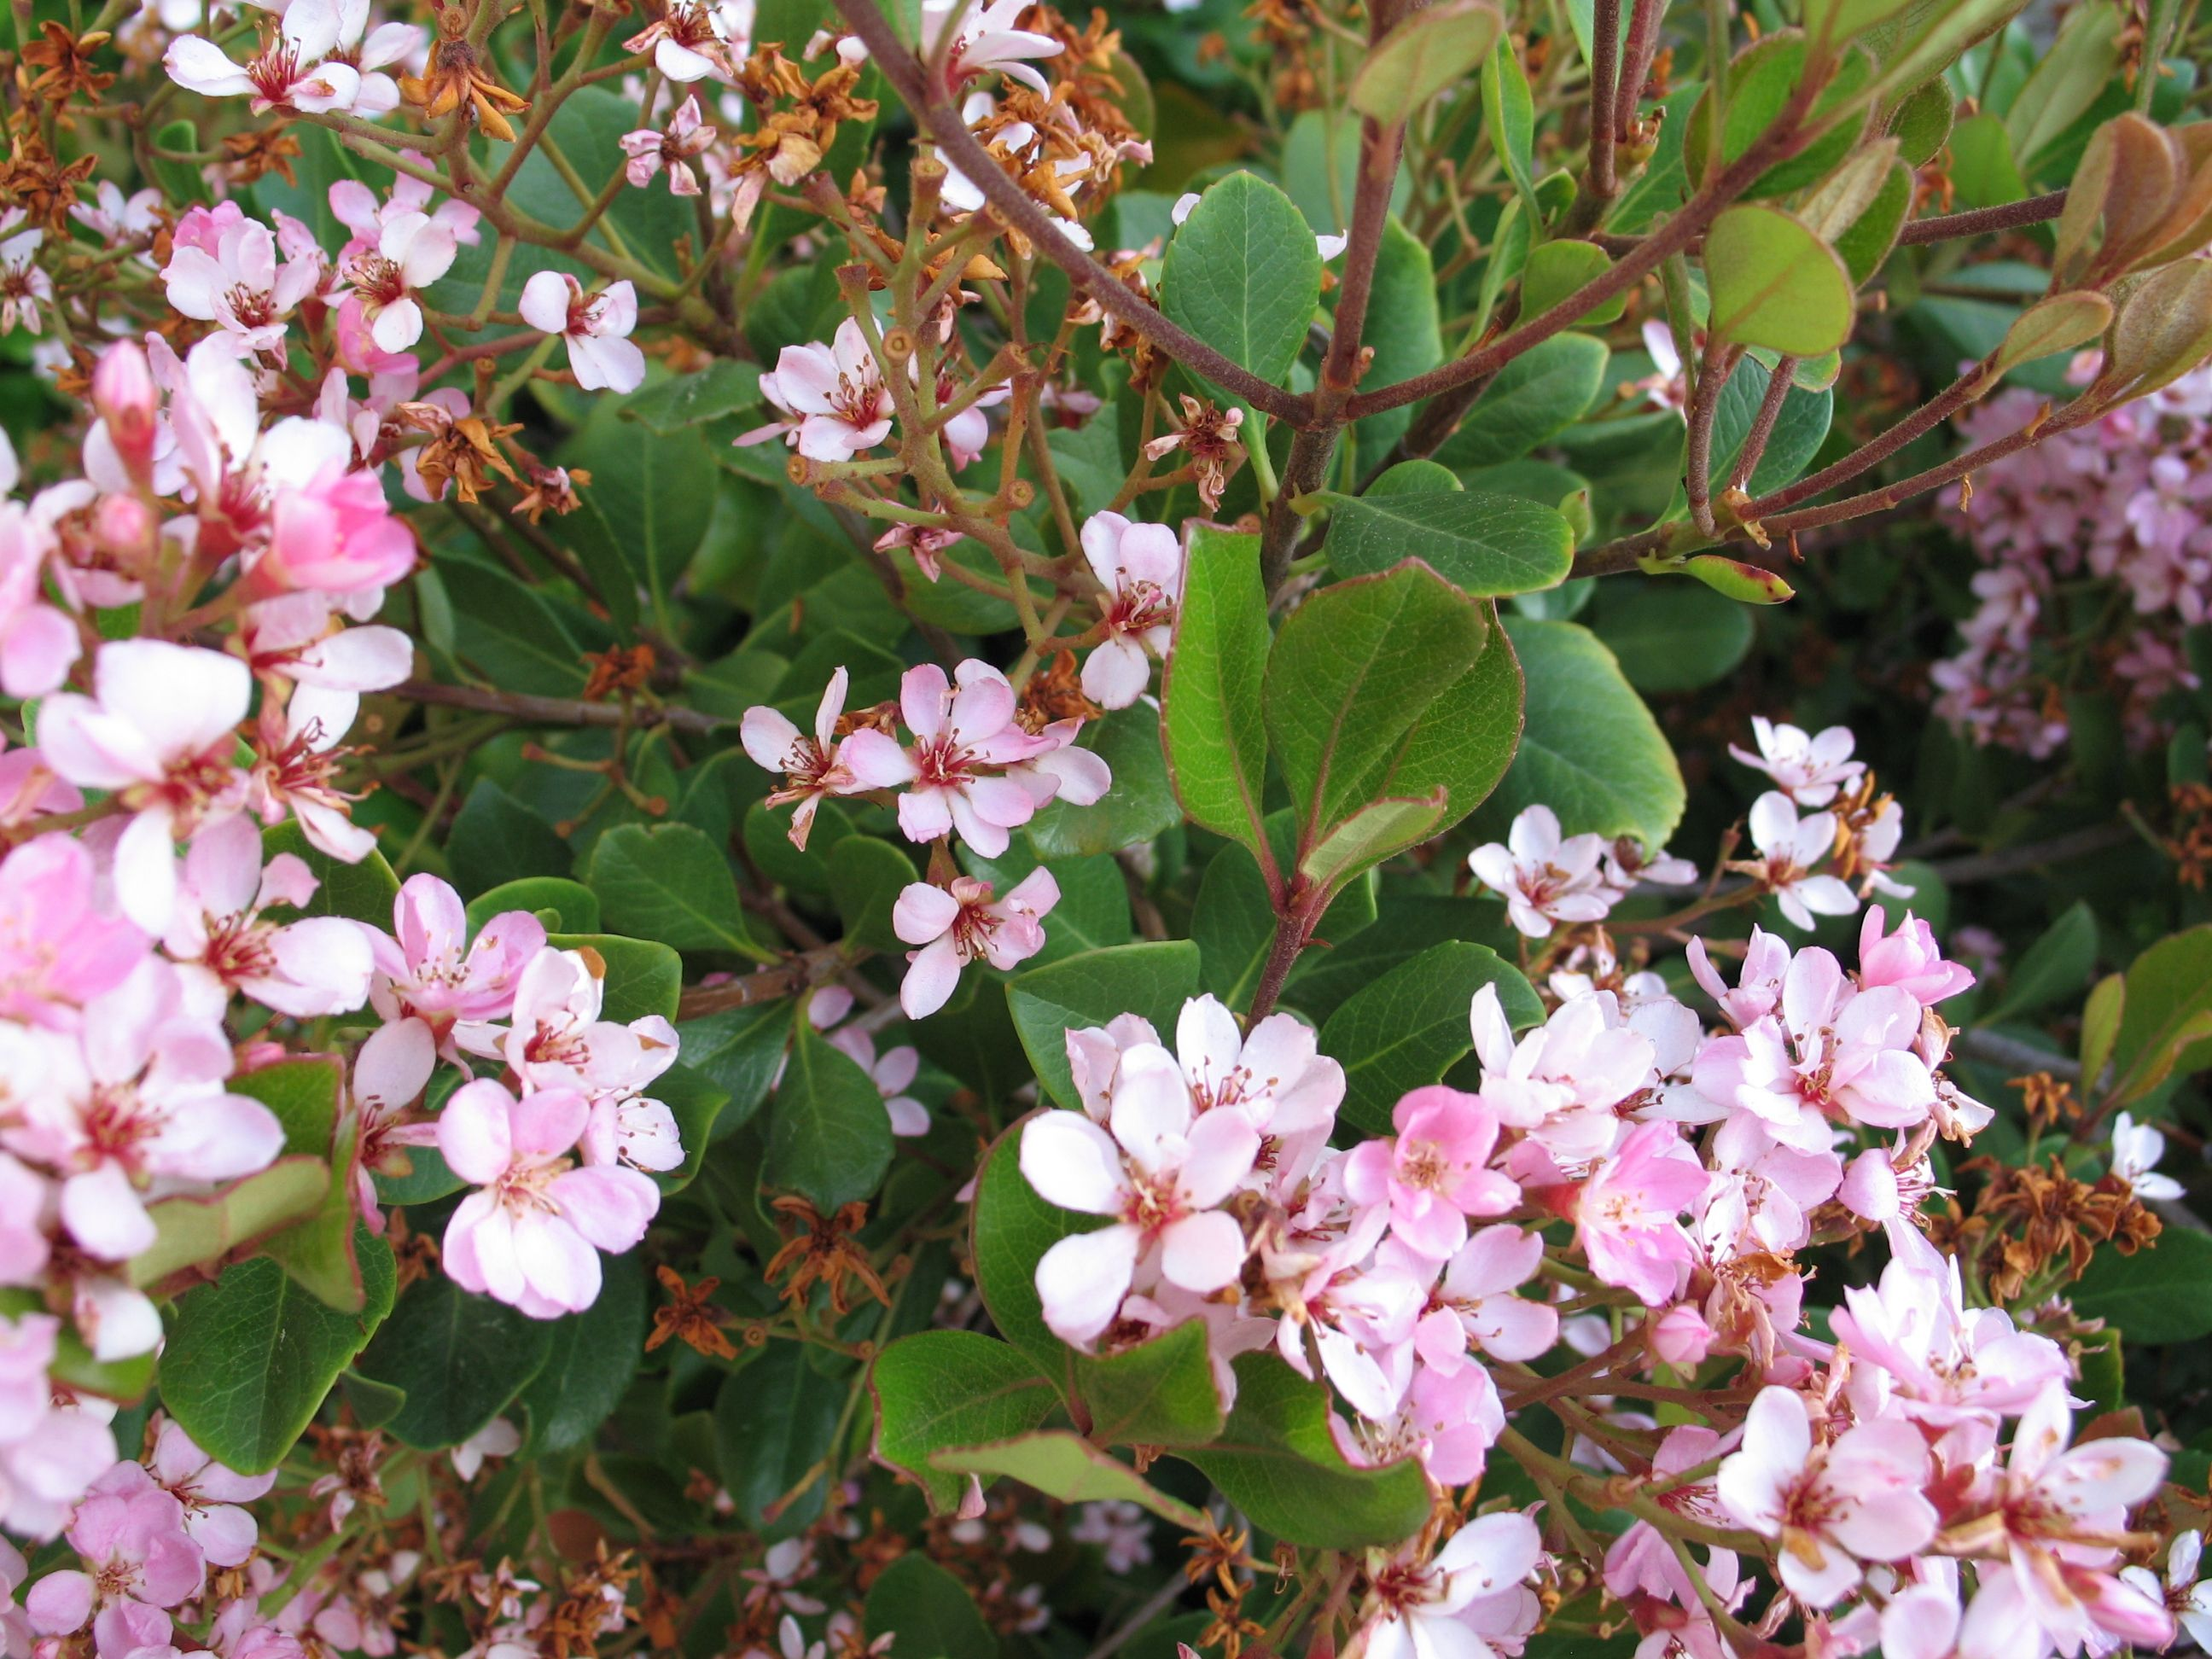 Indian hawthorn is a beautiful plant that can provide a